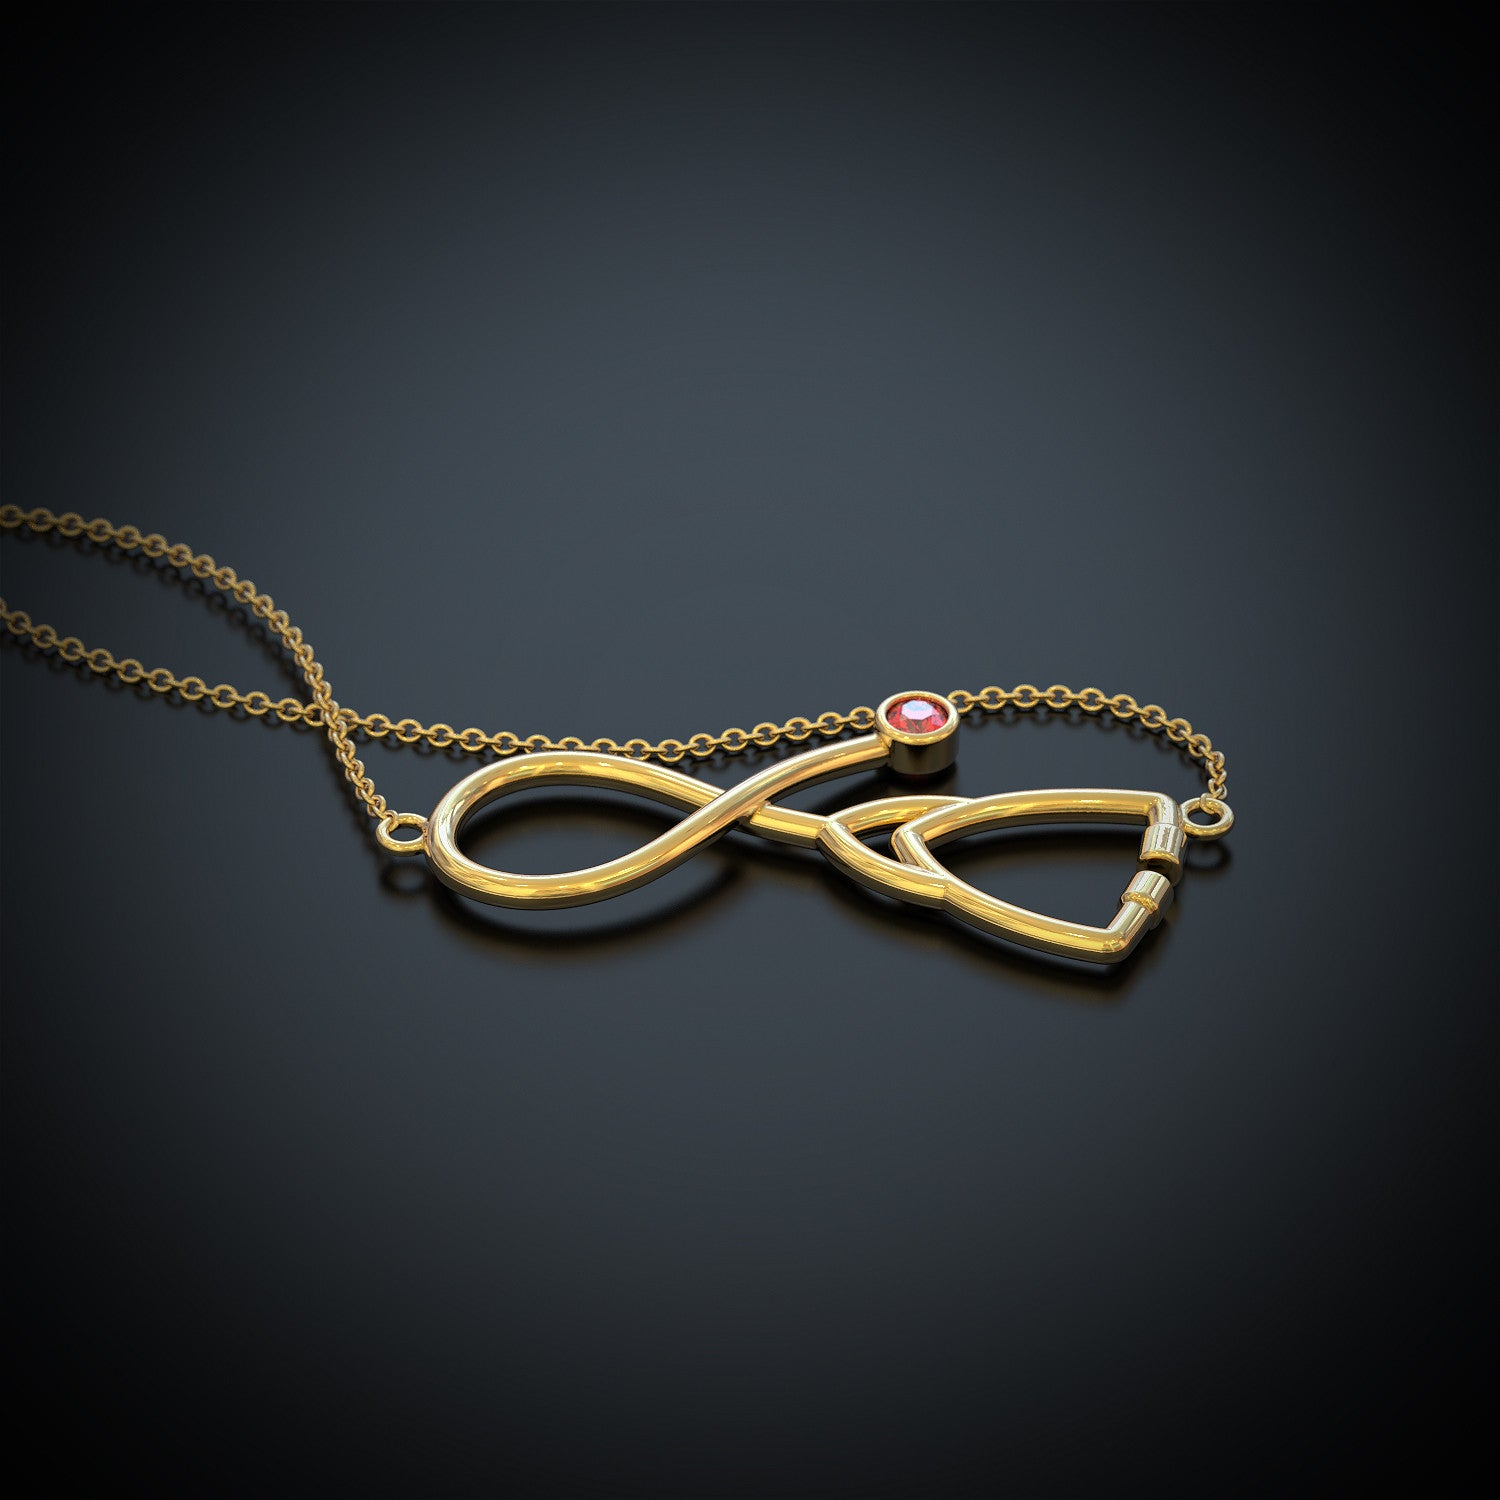 Stethoscope Necklace - LIMITED EDITION